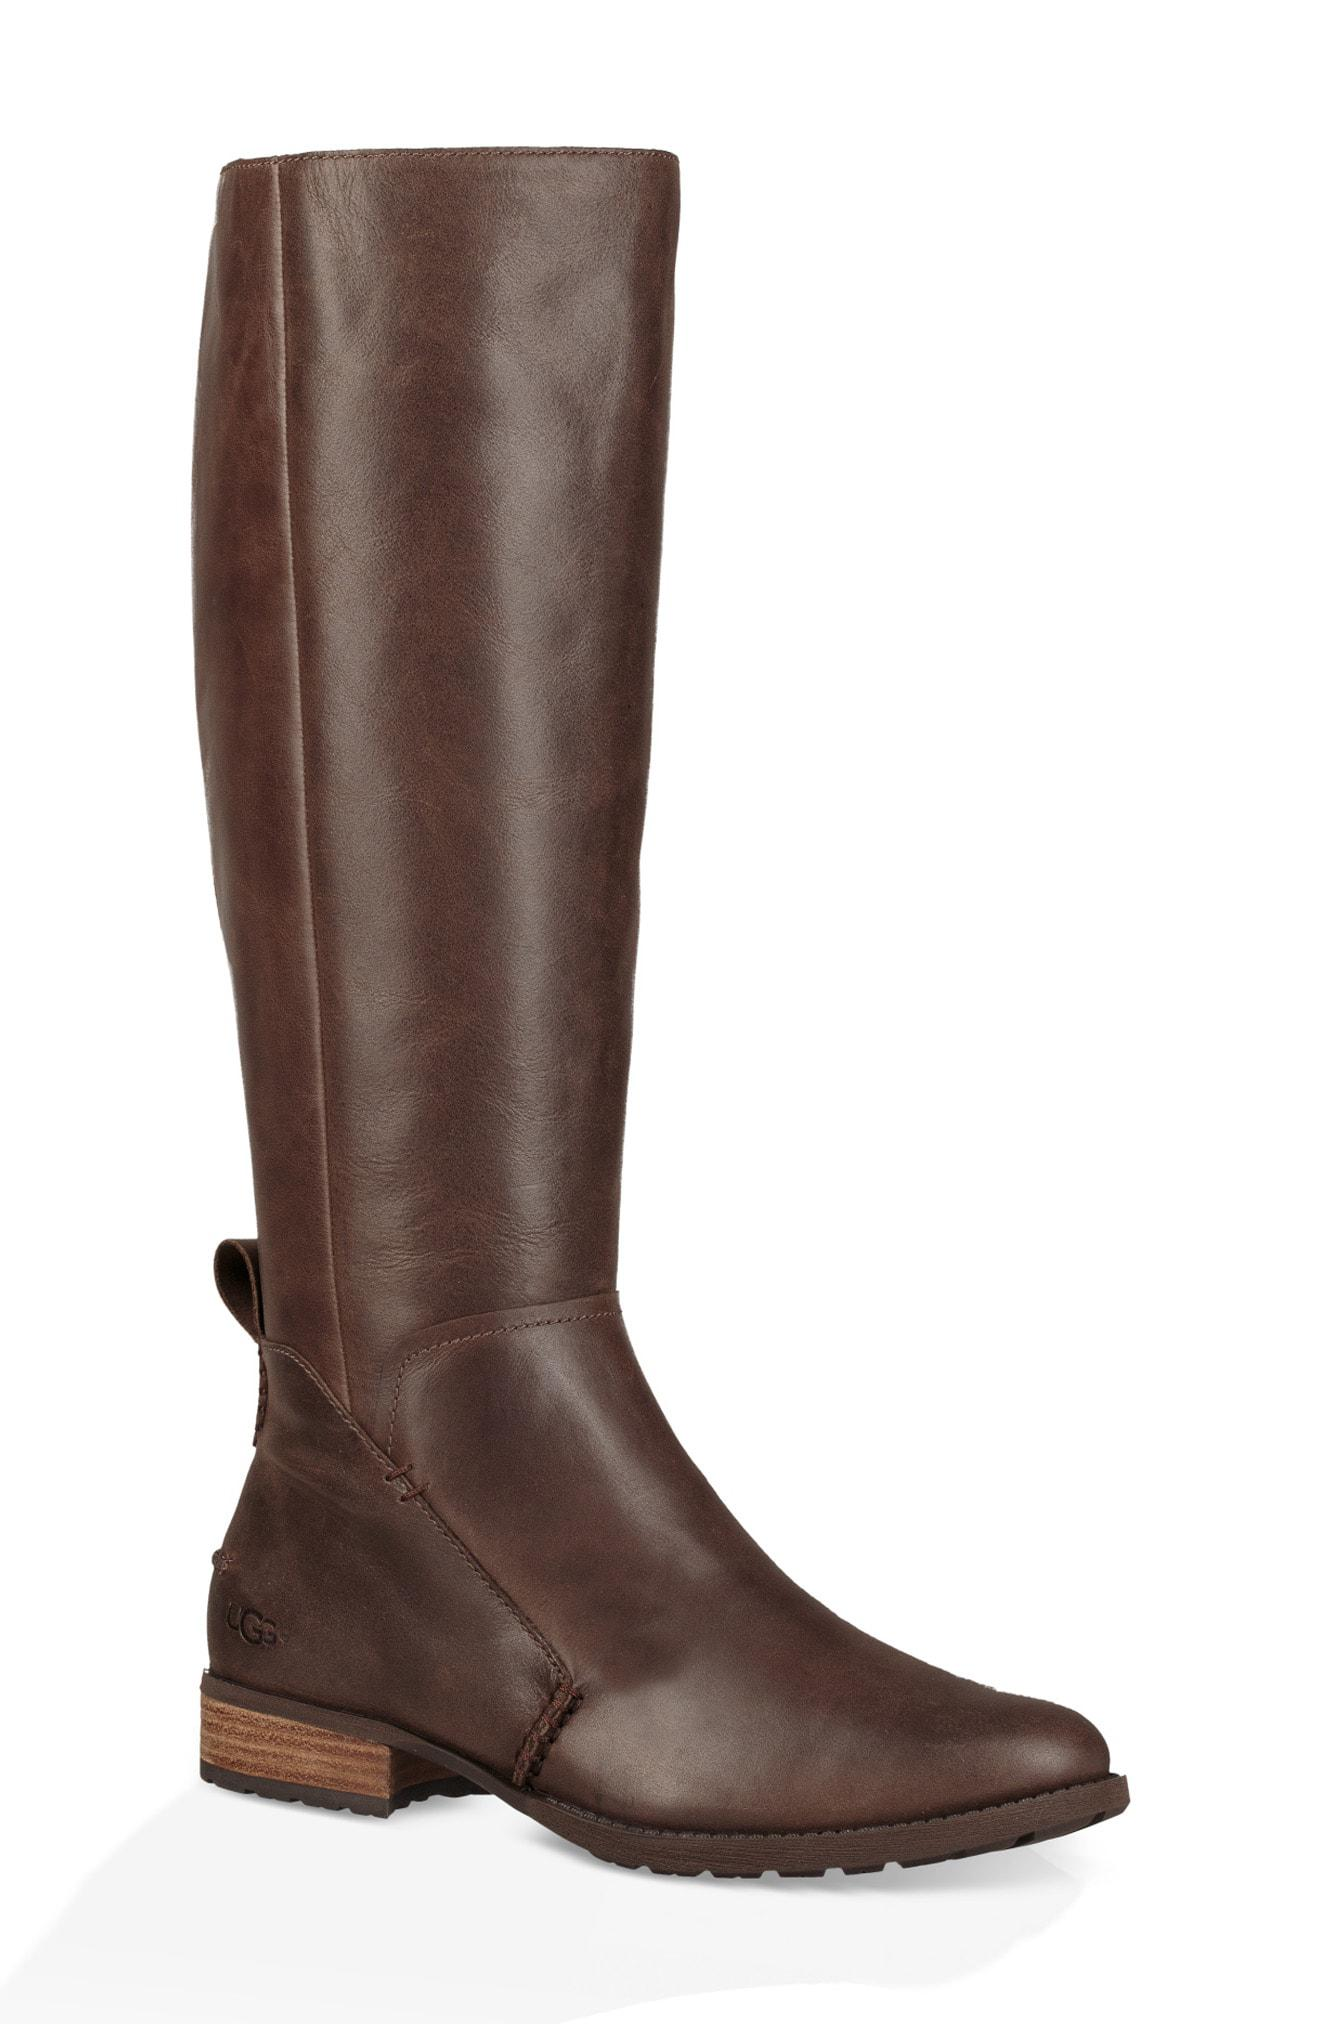 c9f9da7745a Lyst - UGG Ugg Leigh Knee High Riding Boot in Brown